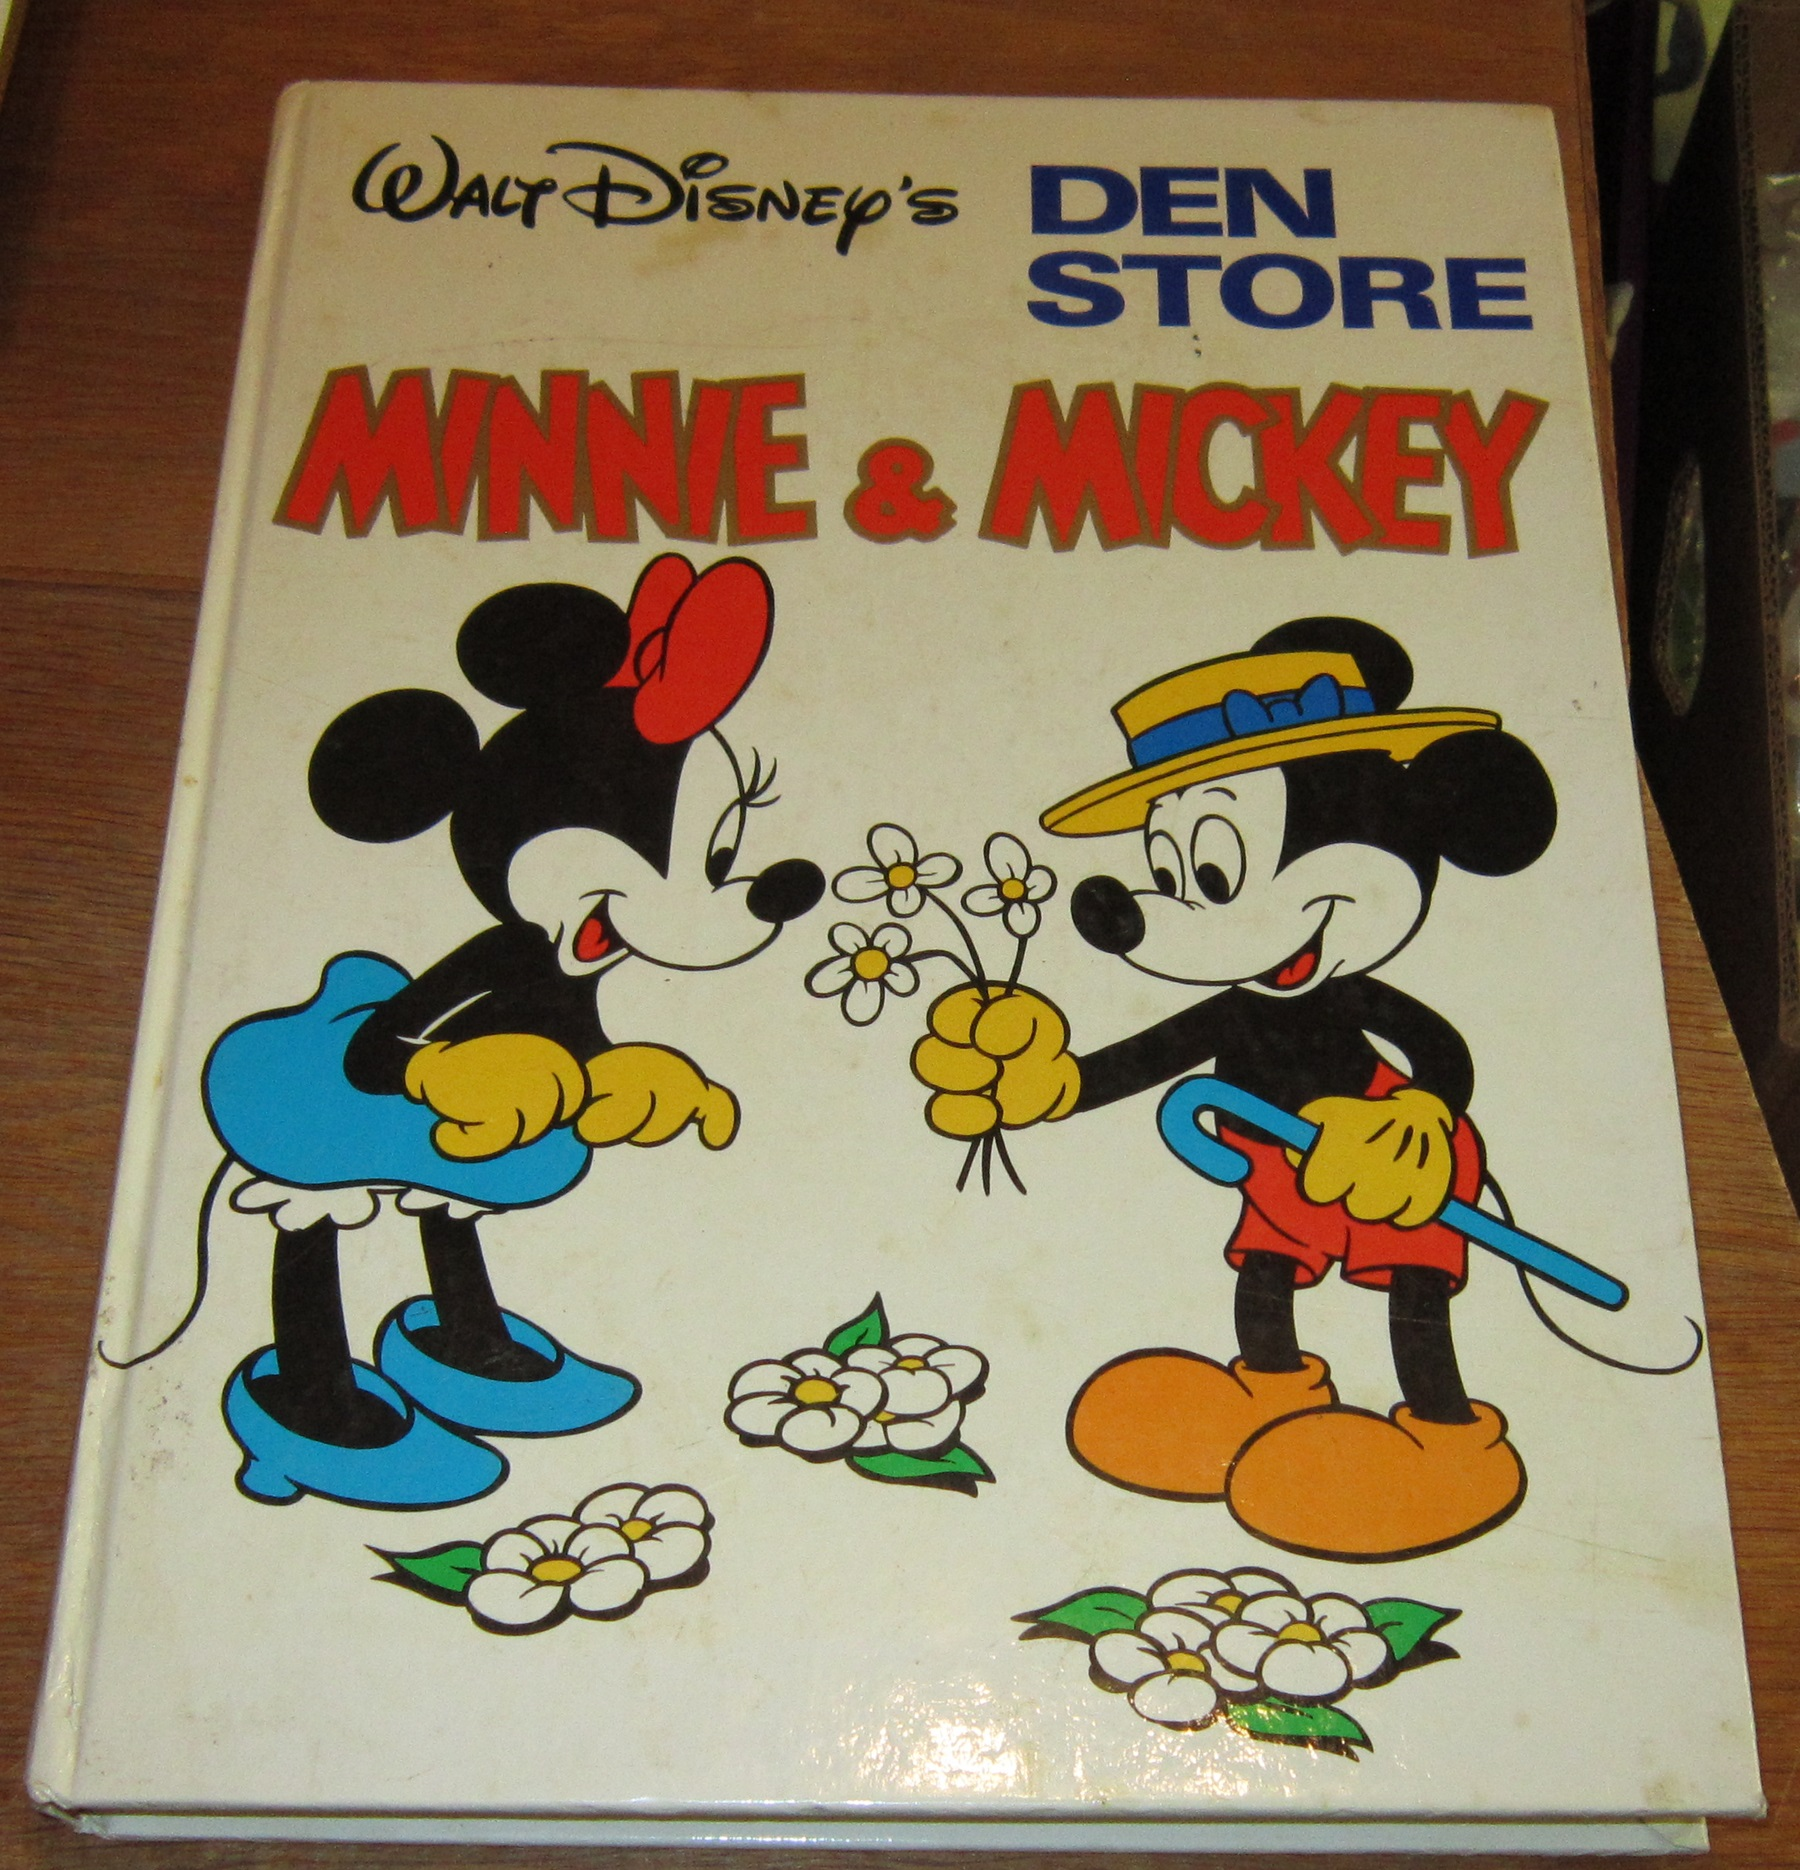 Walt Disney's Den store Minnie & Mickey